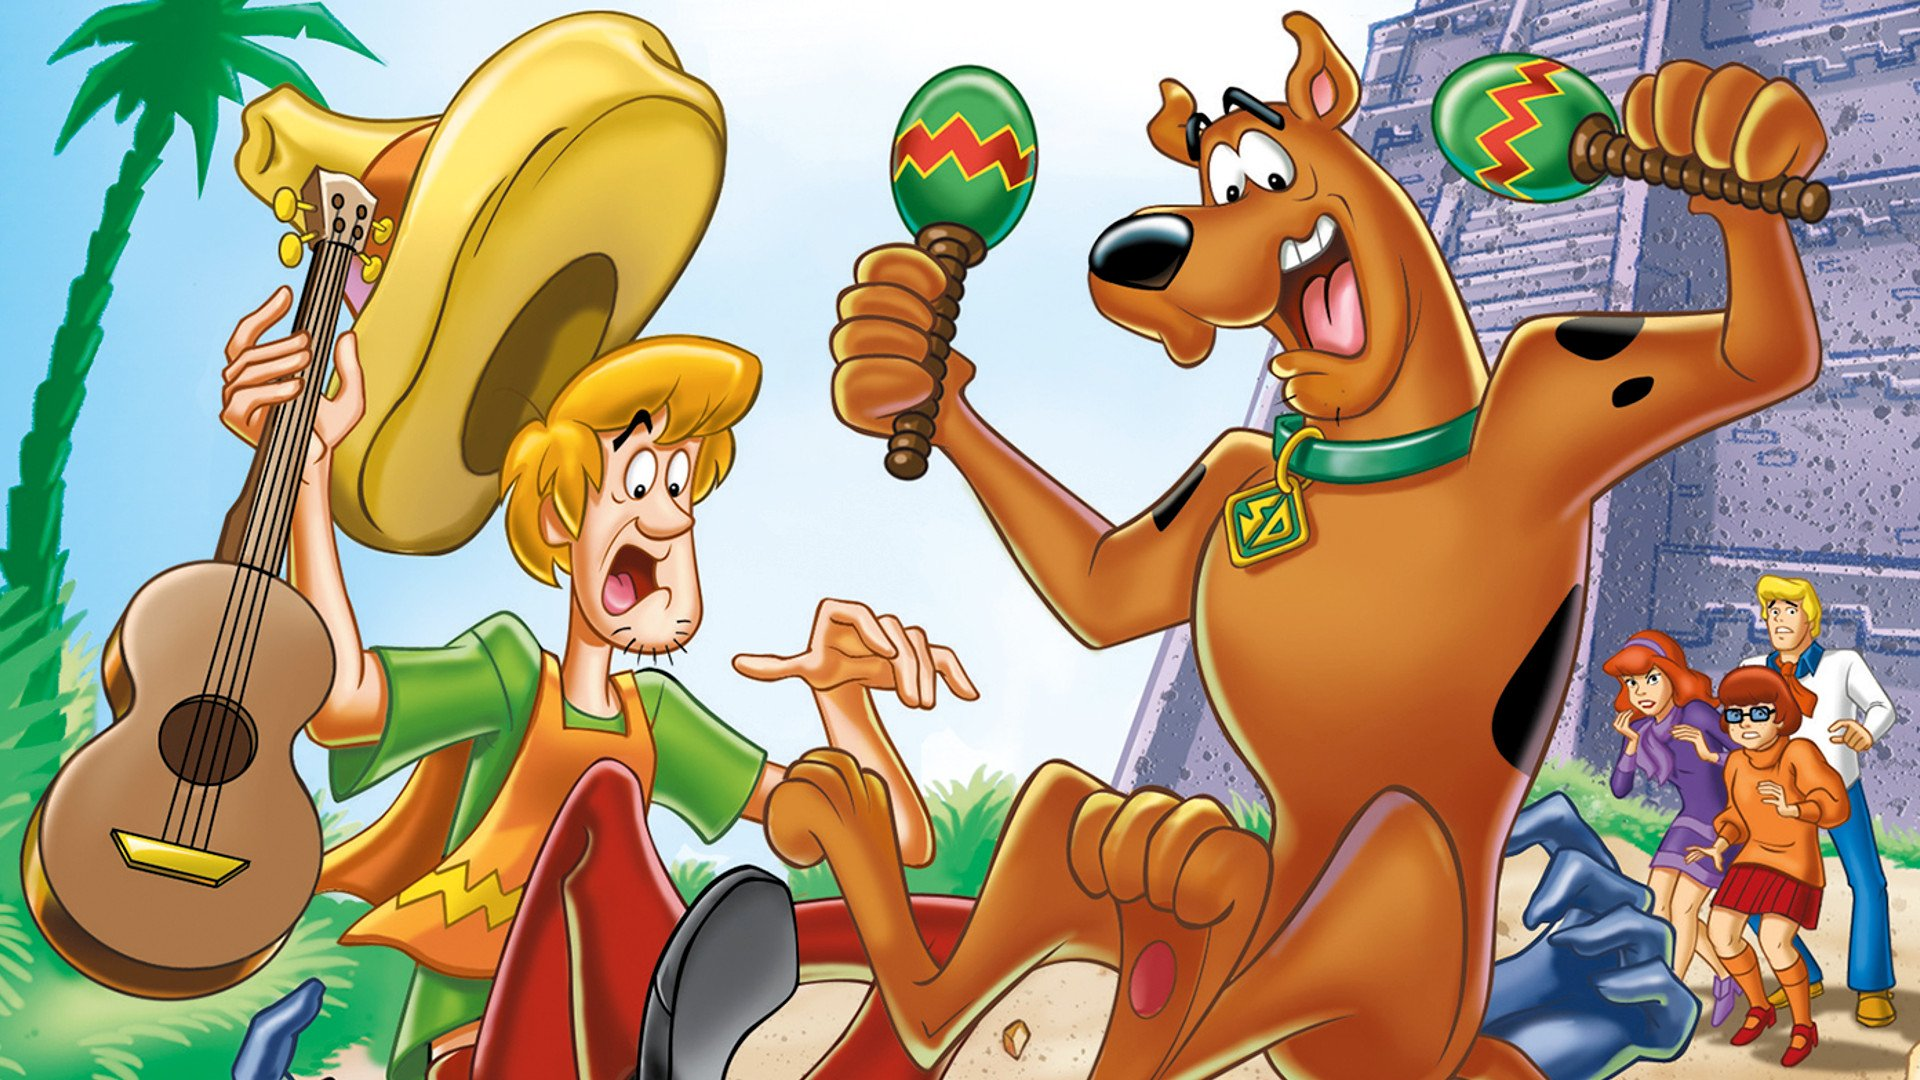 Scooby Doo Movie Cartoon Hd Wallpaper Image For Iphone: Scooby-Doo And The Monster Of Mexico HD Wallpaper